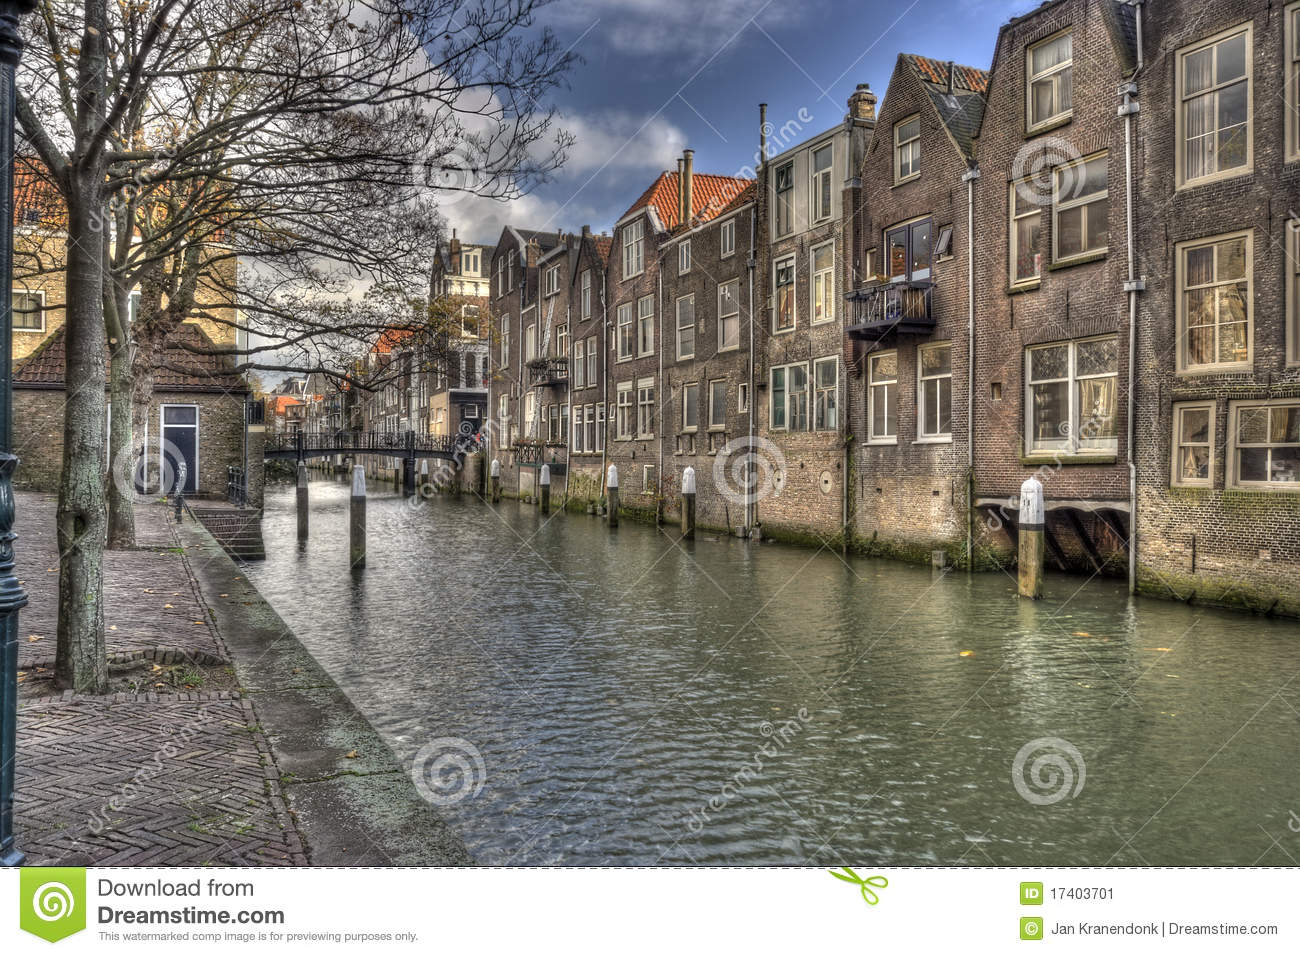 Florence further Amsterdam Architecture additionally Breda also Brown Cafes In Amsterdam as well Cordoba City Break. on amsterdam architecture